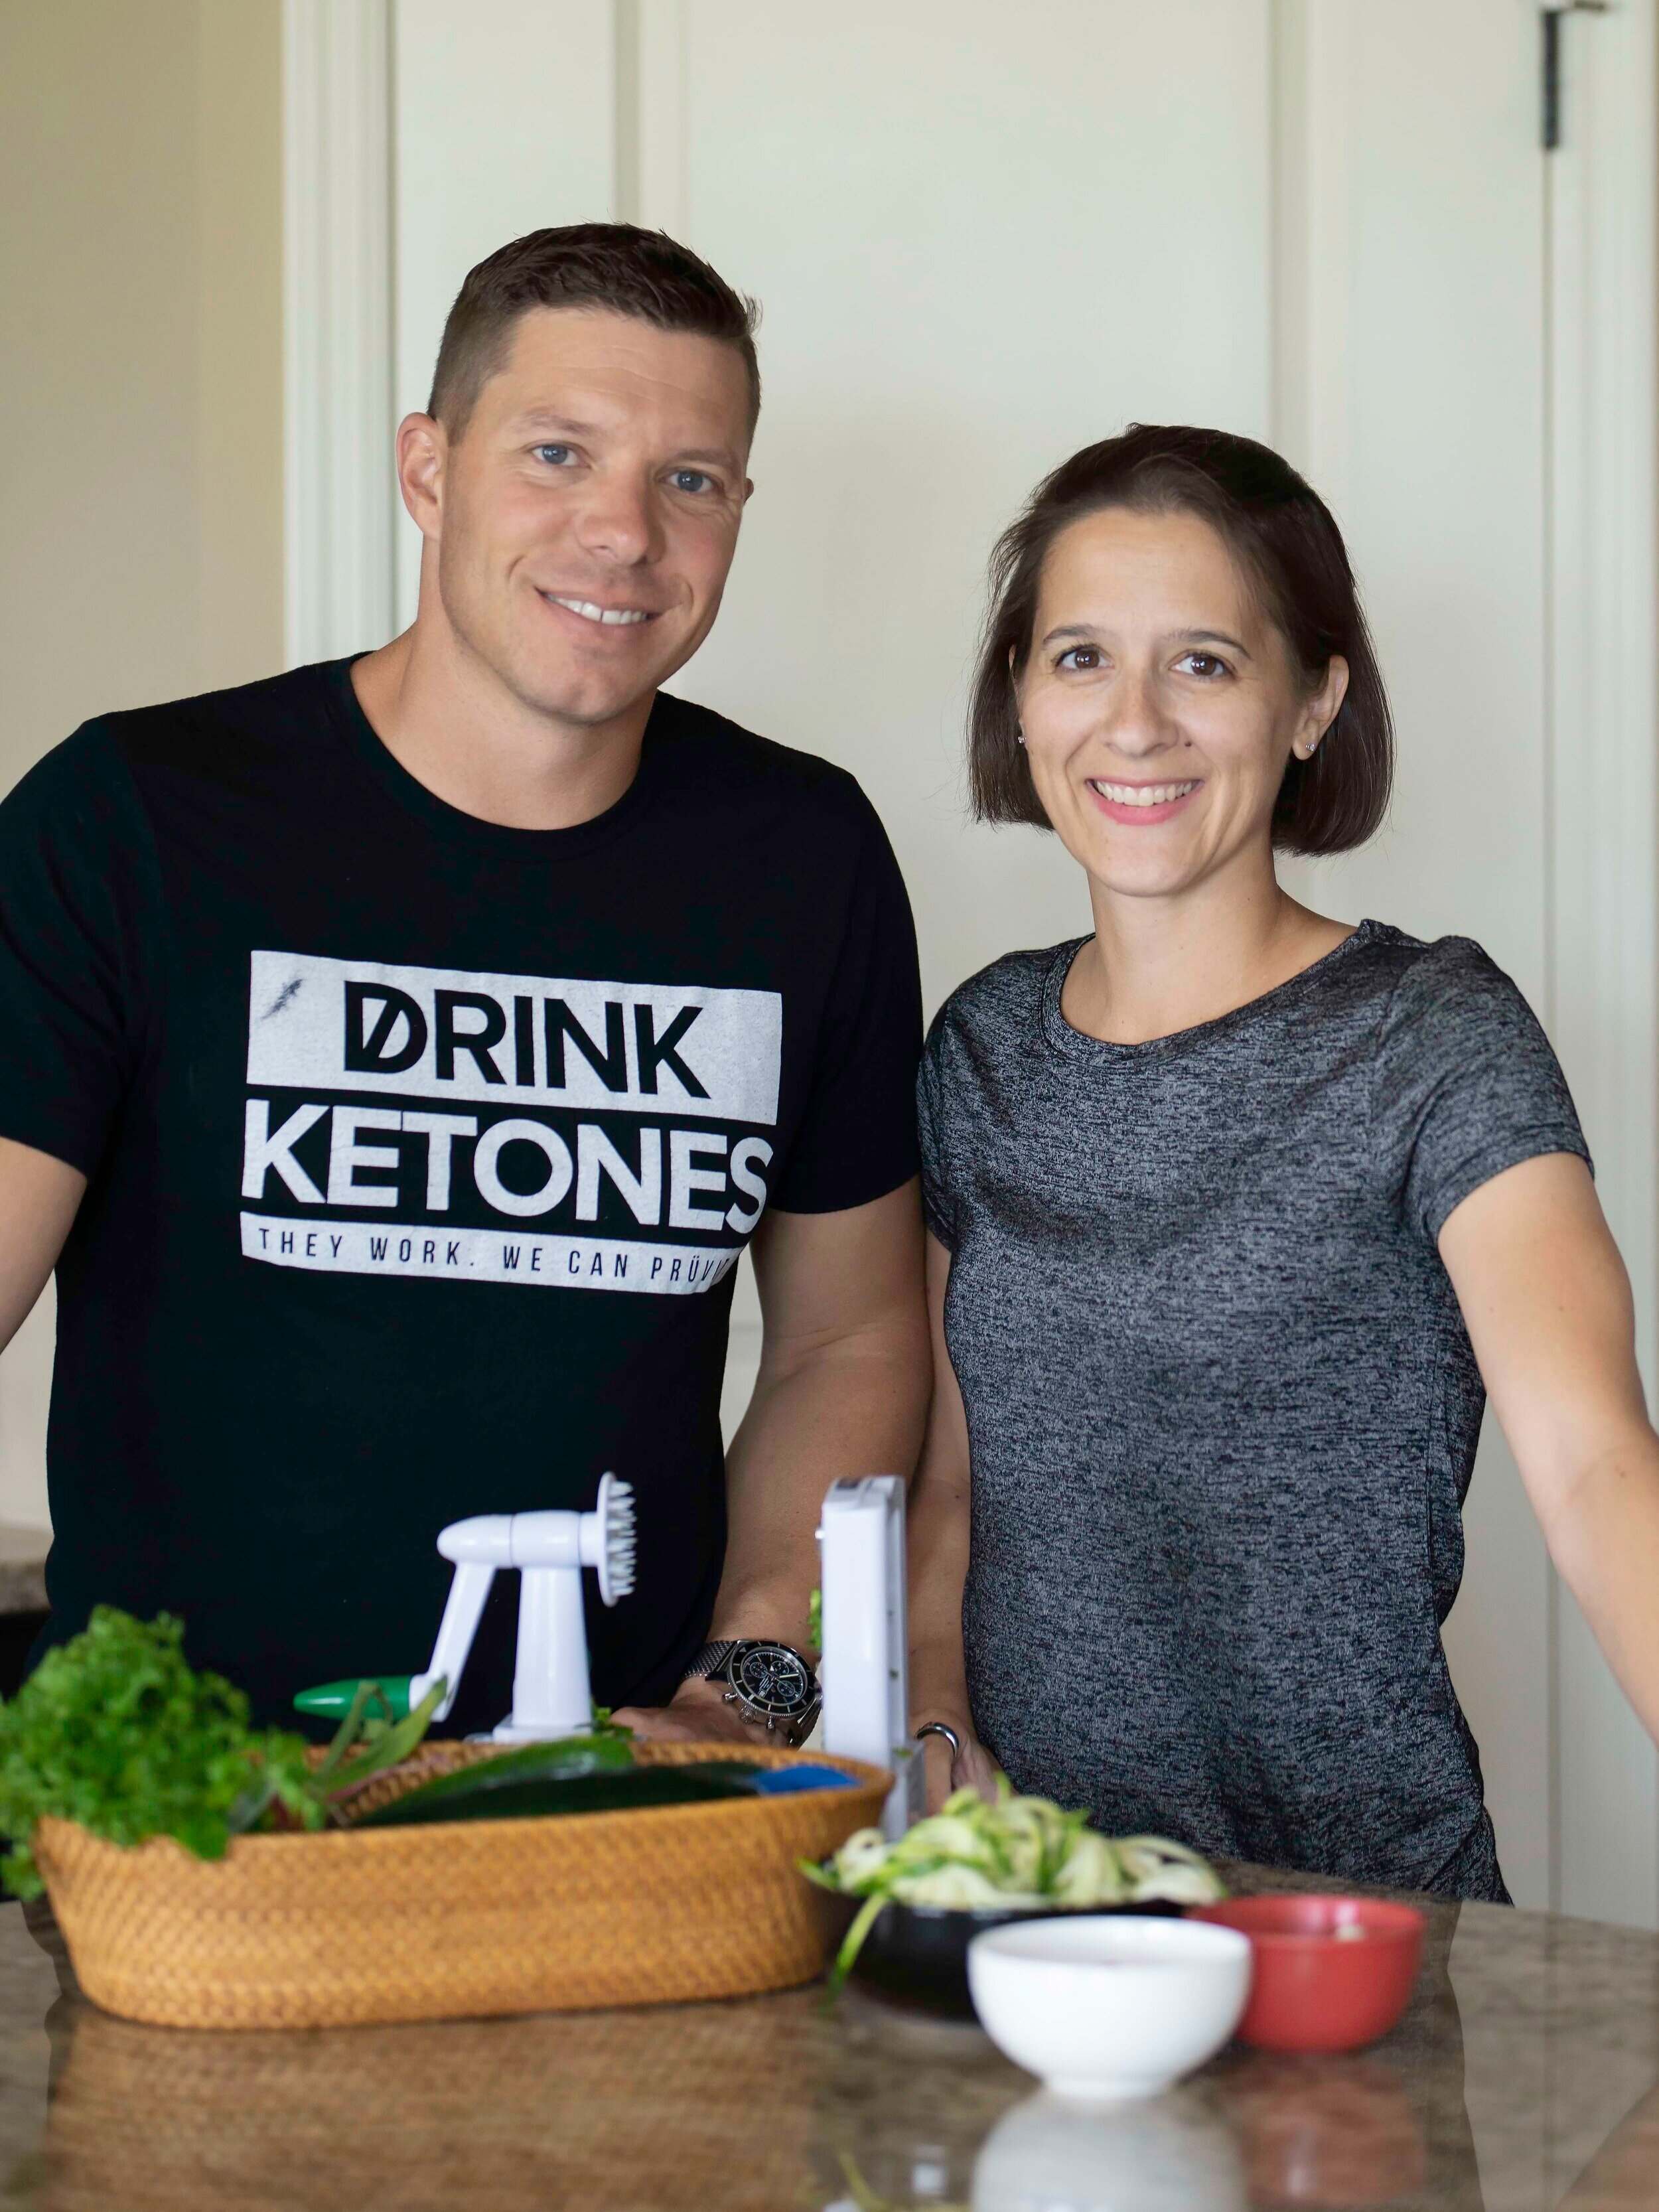 the+keto+dad+10+day+drink+ketones+challenge+guide